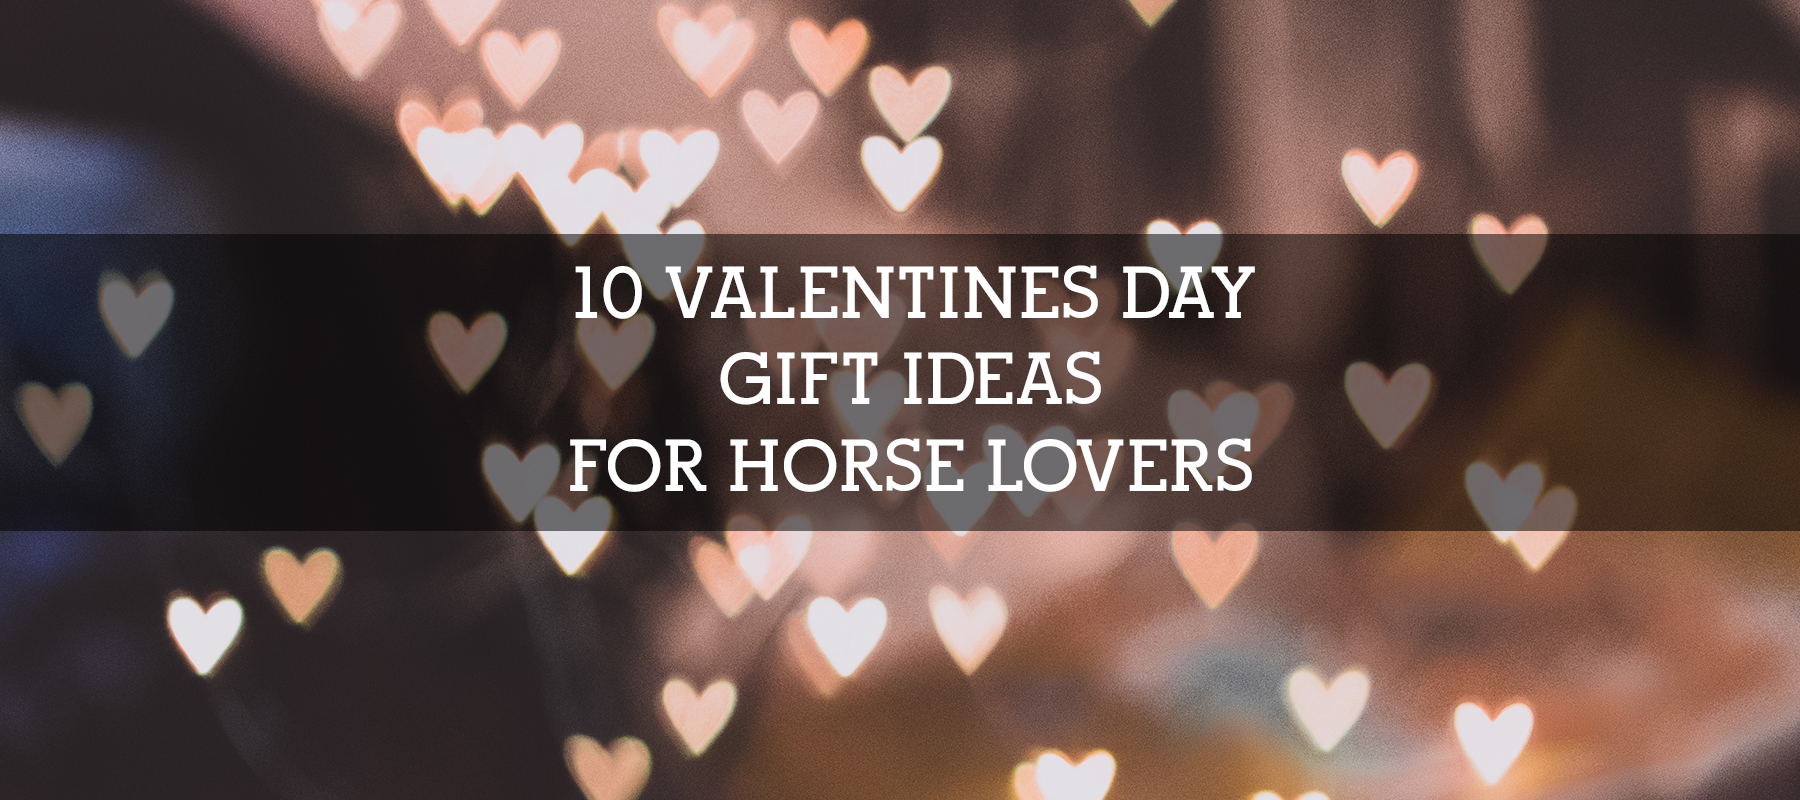 & 10 Valentines Day Gift Ideas for Horse Lovers - Colorado Horse Forum